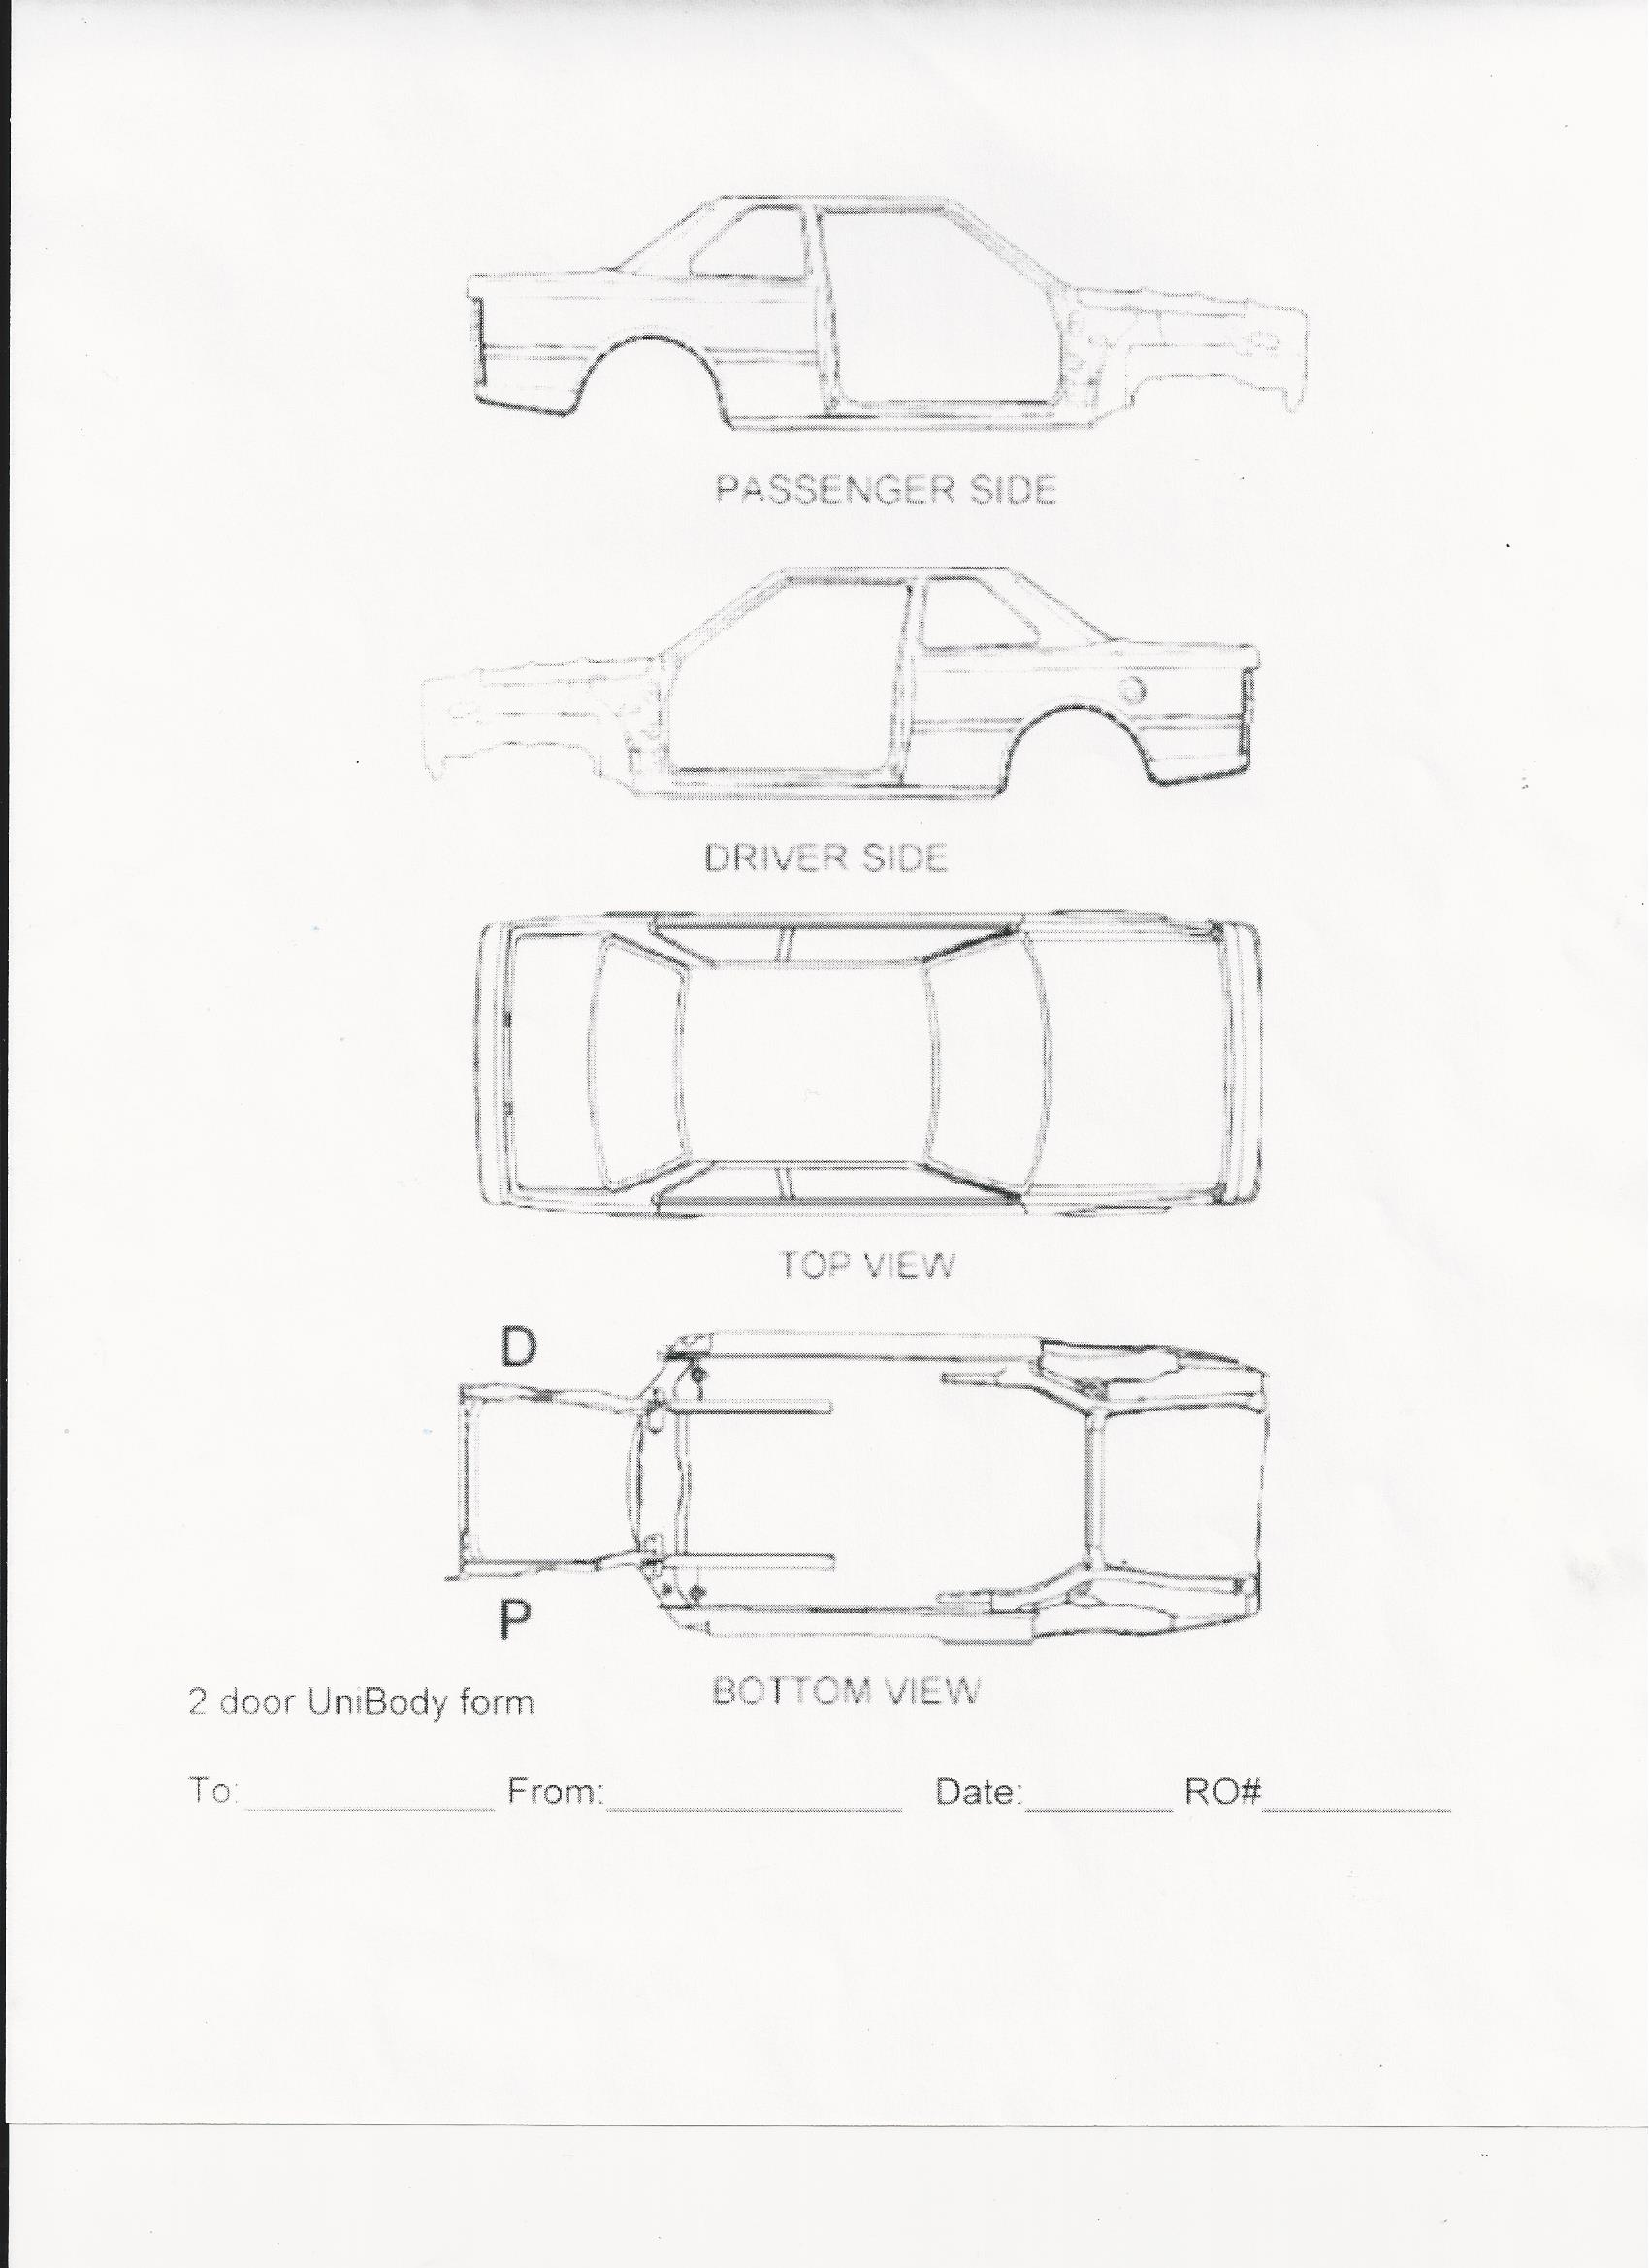 vehicle forms ar1 auto wrecking and sales yakima wa Jeep Top View Diagram vehicle diagrams 2 door